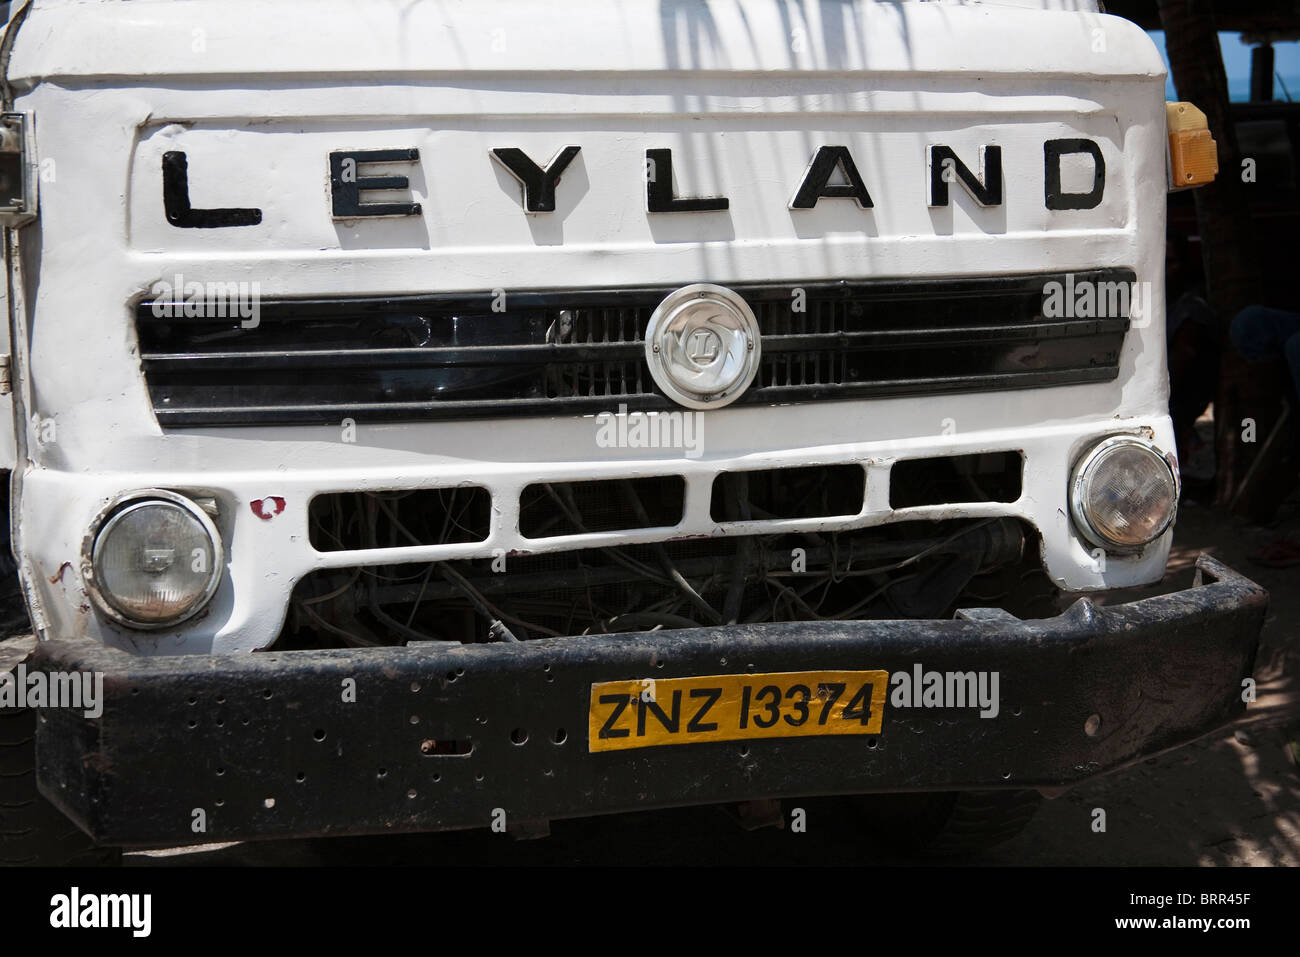 Front of an old Leyland truck probably dating back to the 80's - Stock Image